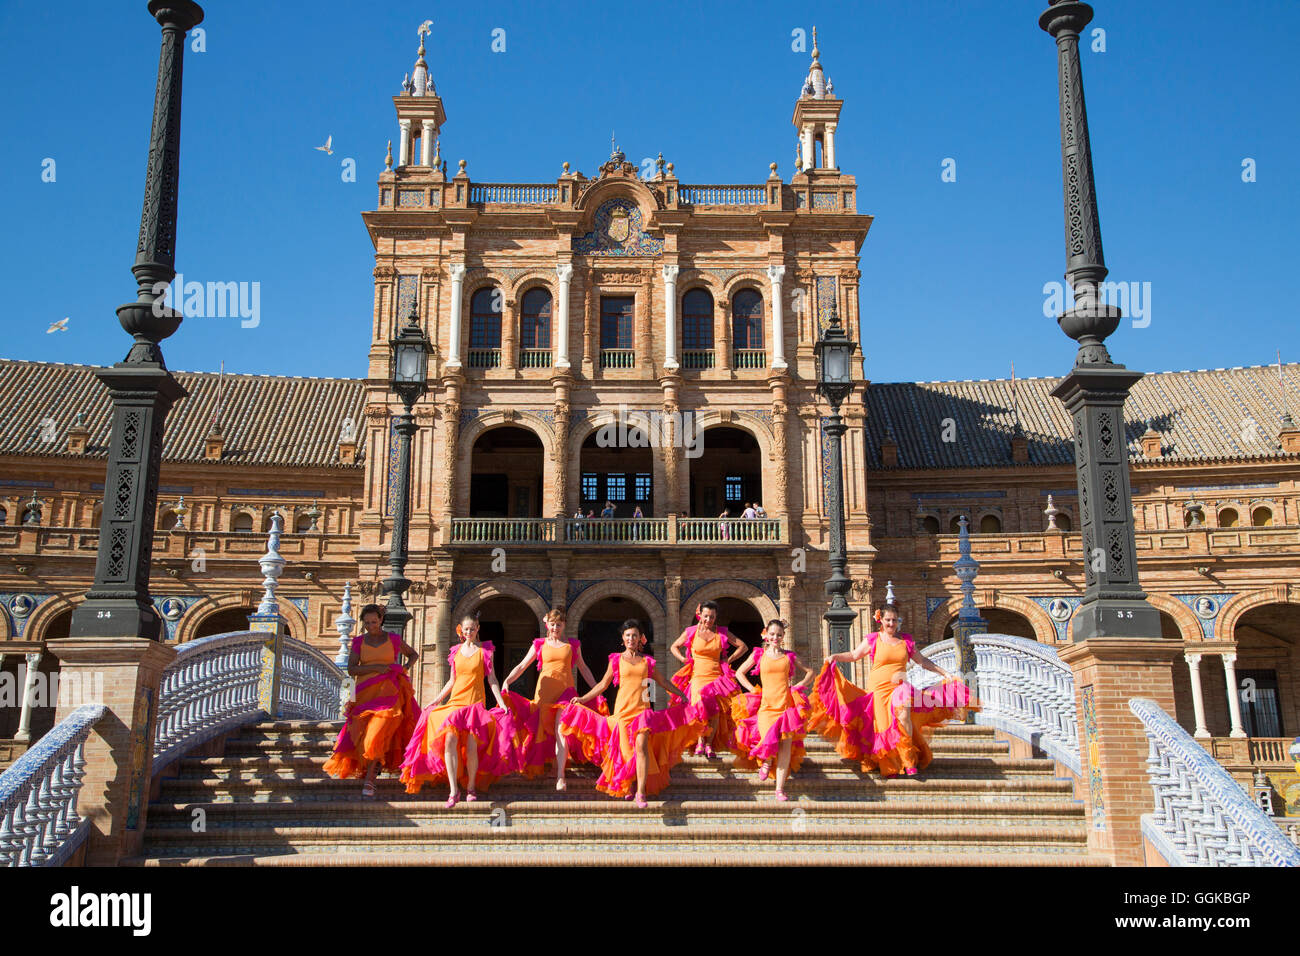 Members of Flamenco Fuego dance group running down the steps at Plaza de Espana, Seville, Andalusia, Spain - Stock Image